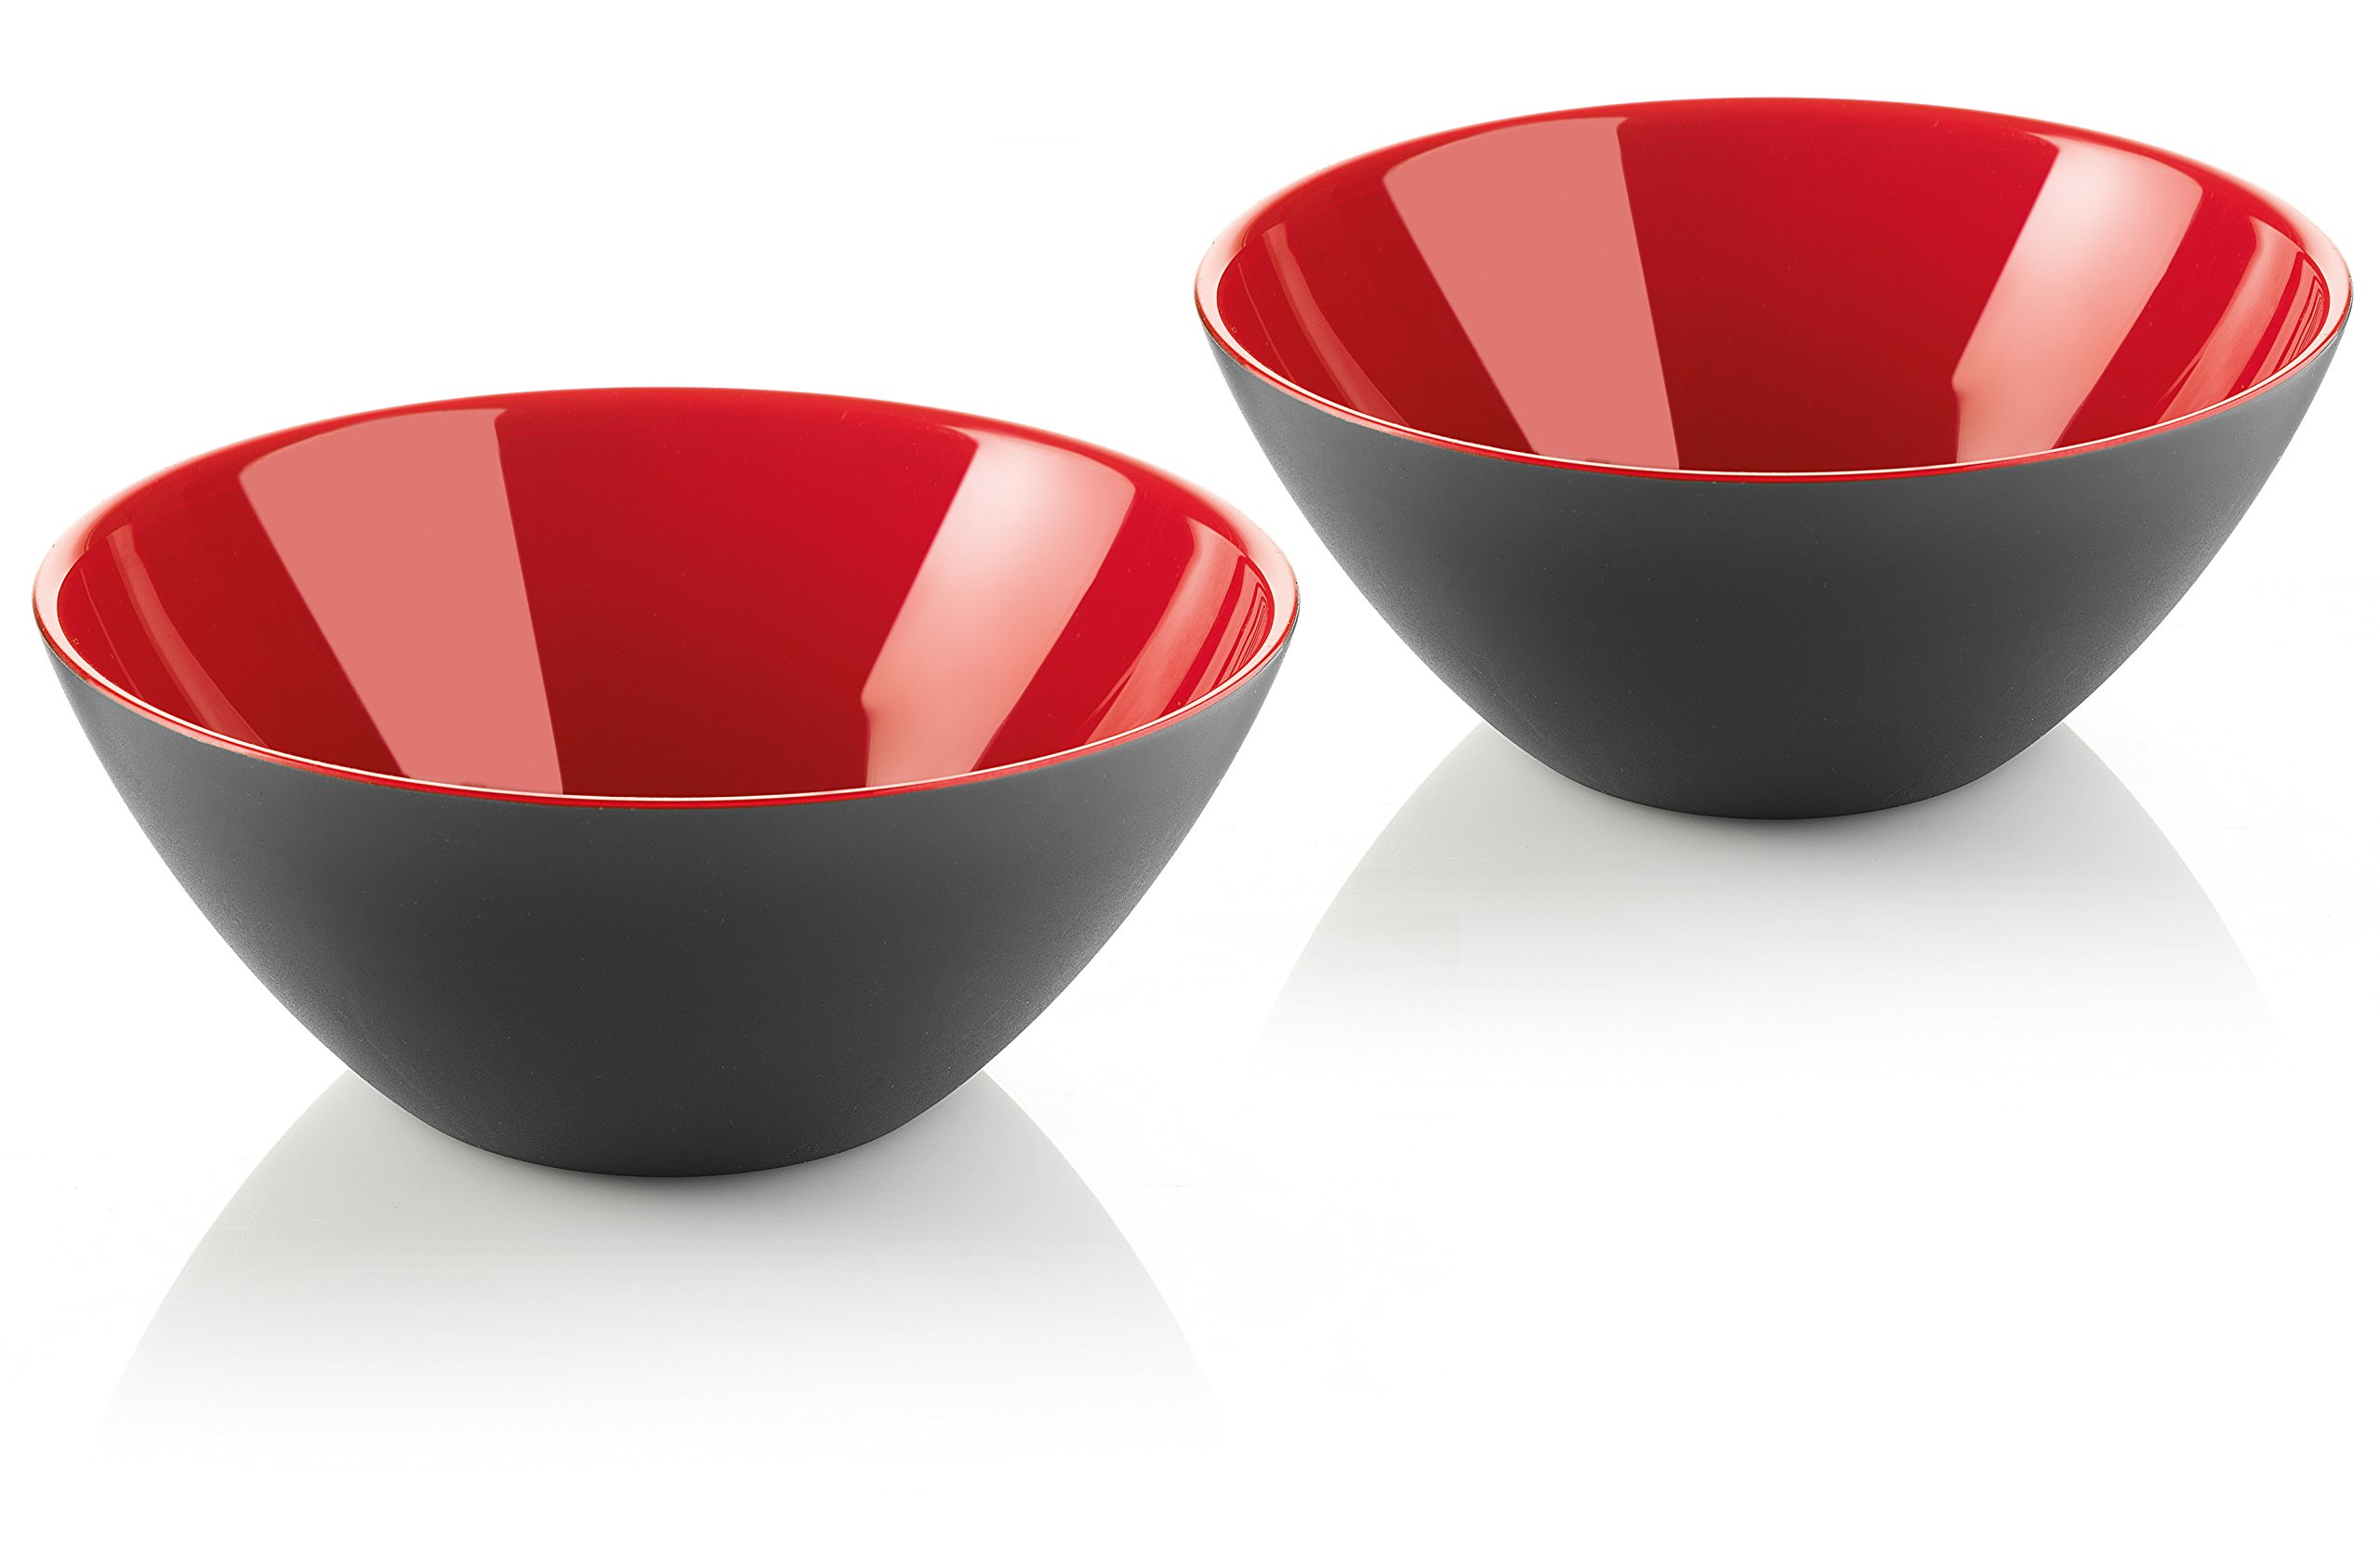 Guzzini My Fusion Small Bowls, Set of 2, BPA-Free Shatter-Resistant Acrylic, 4-3/4'' Diameter, Ideal for Desserts, Soups and Sides, Black, Red